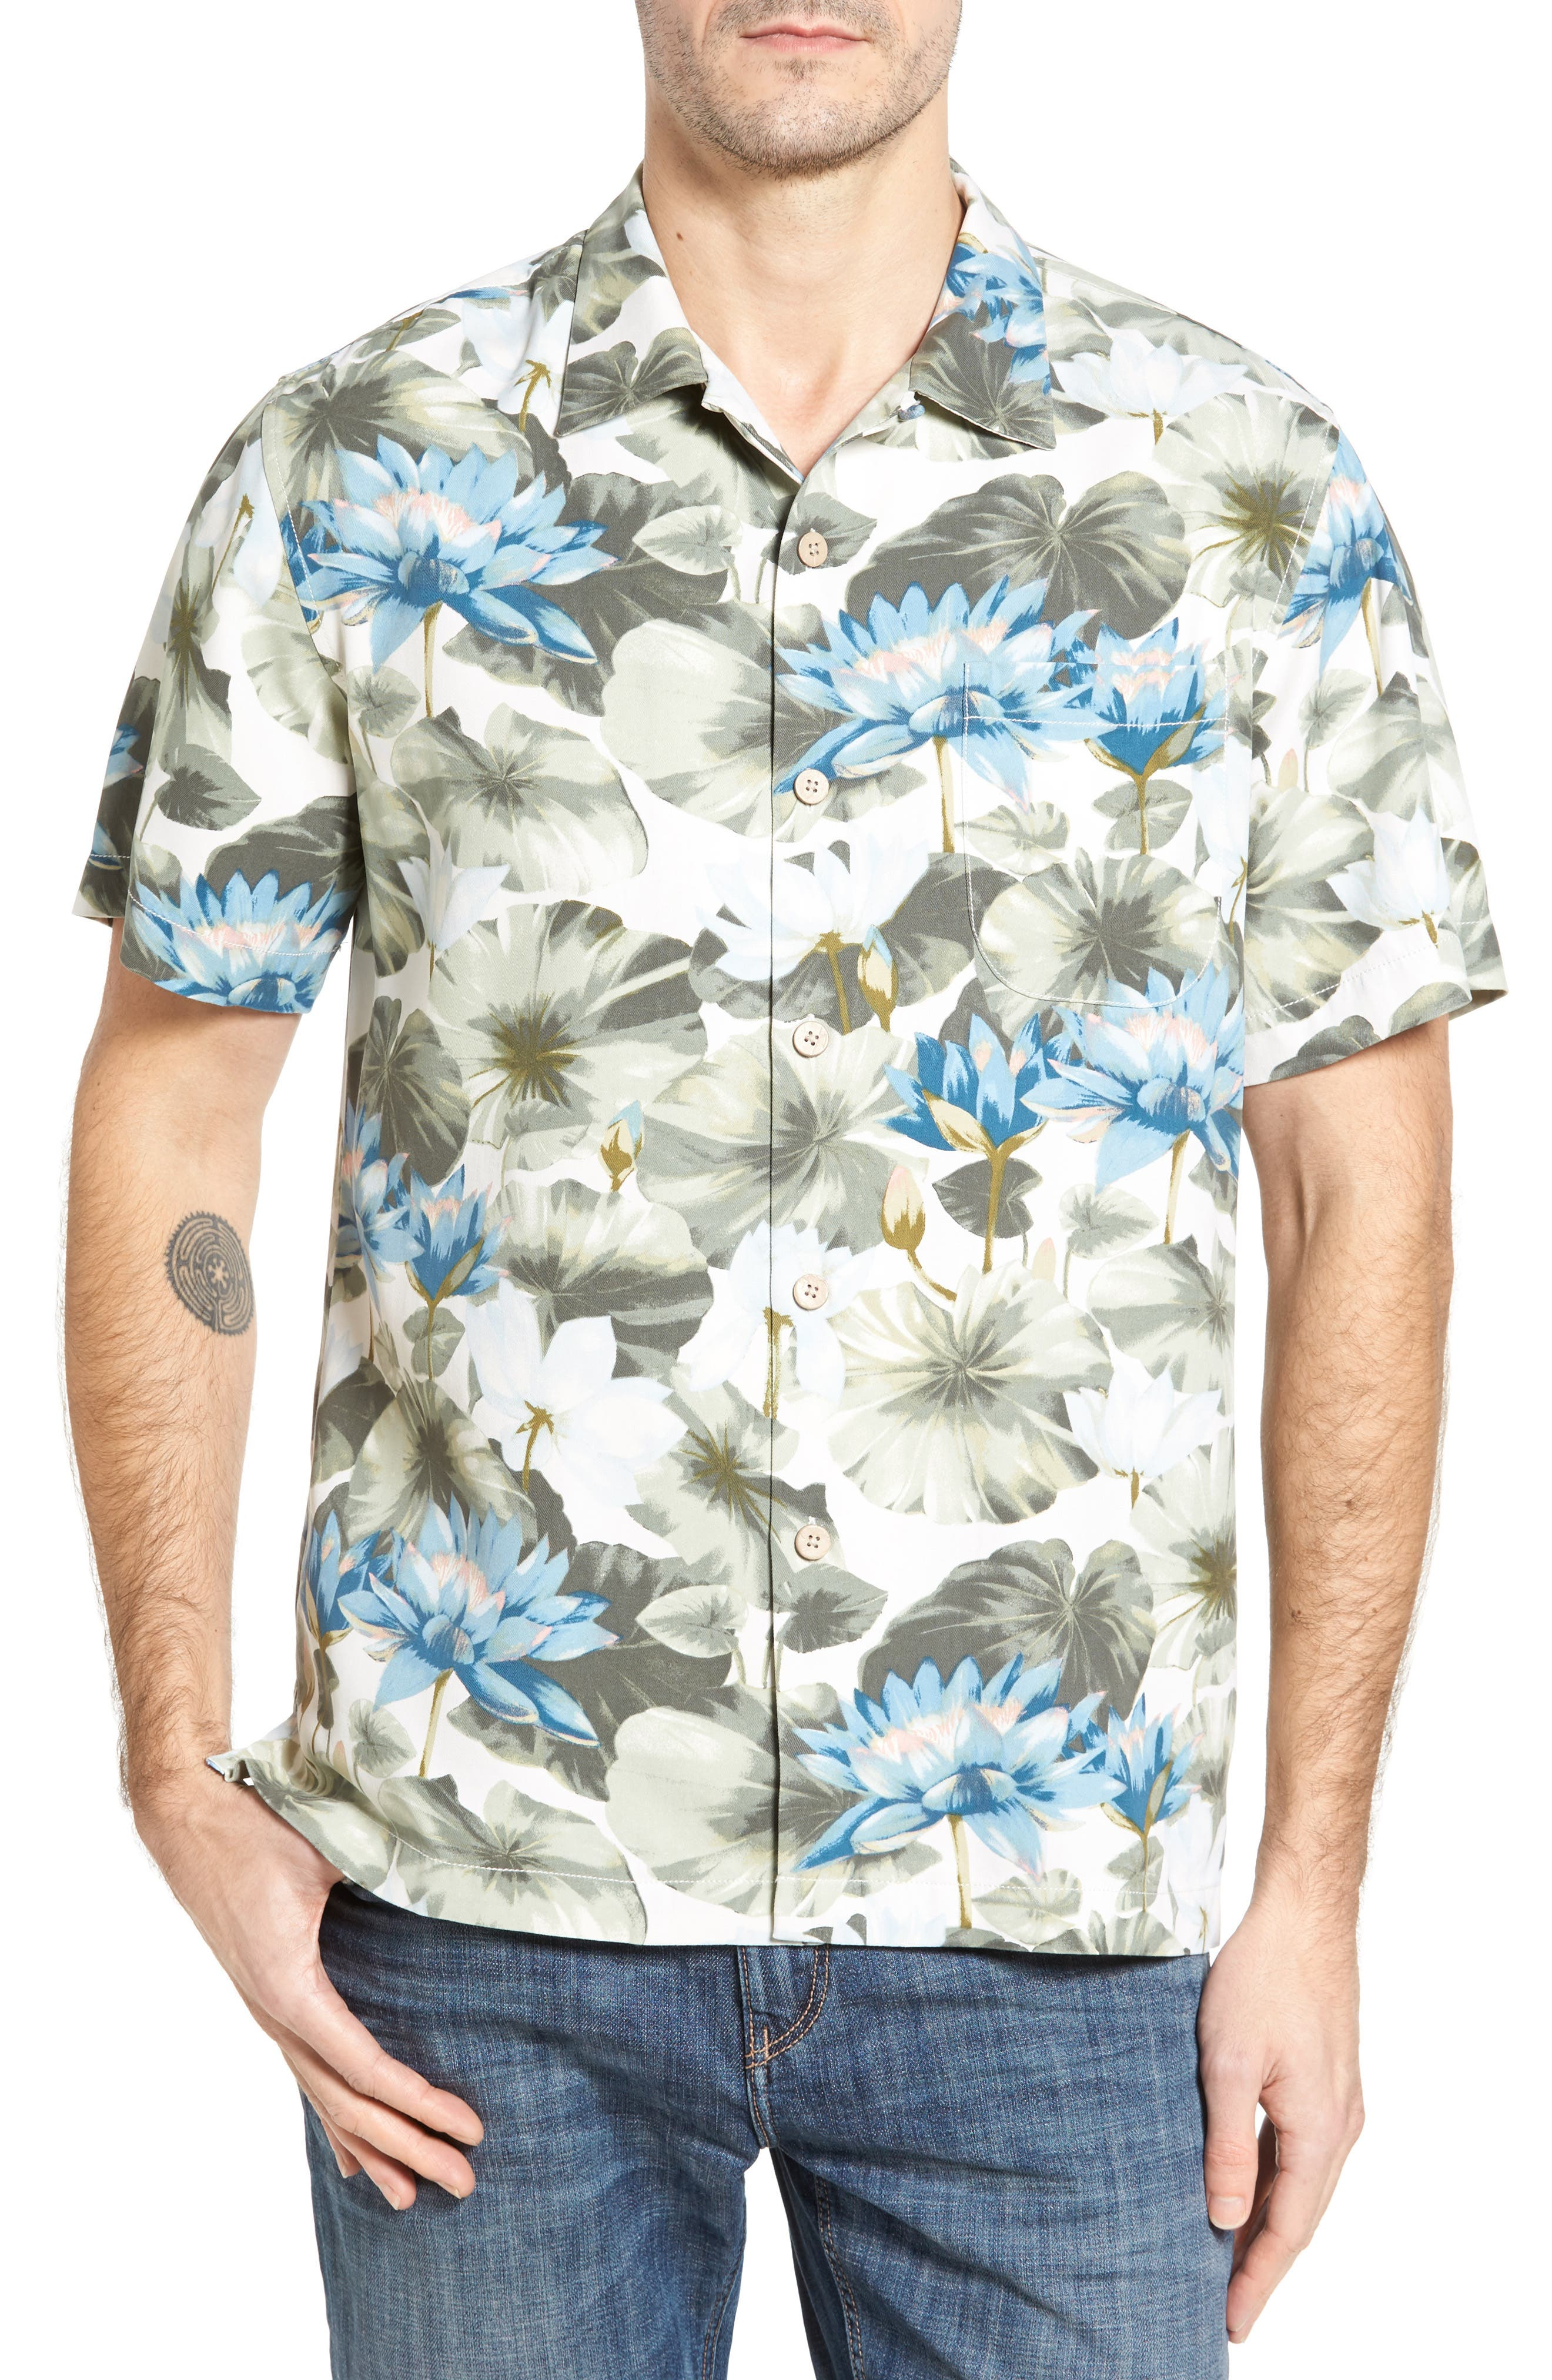 TOMMY BAHAMA Garden of Hope and Courage Silk